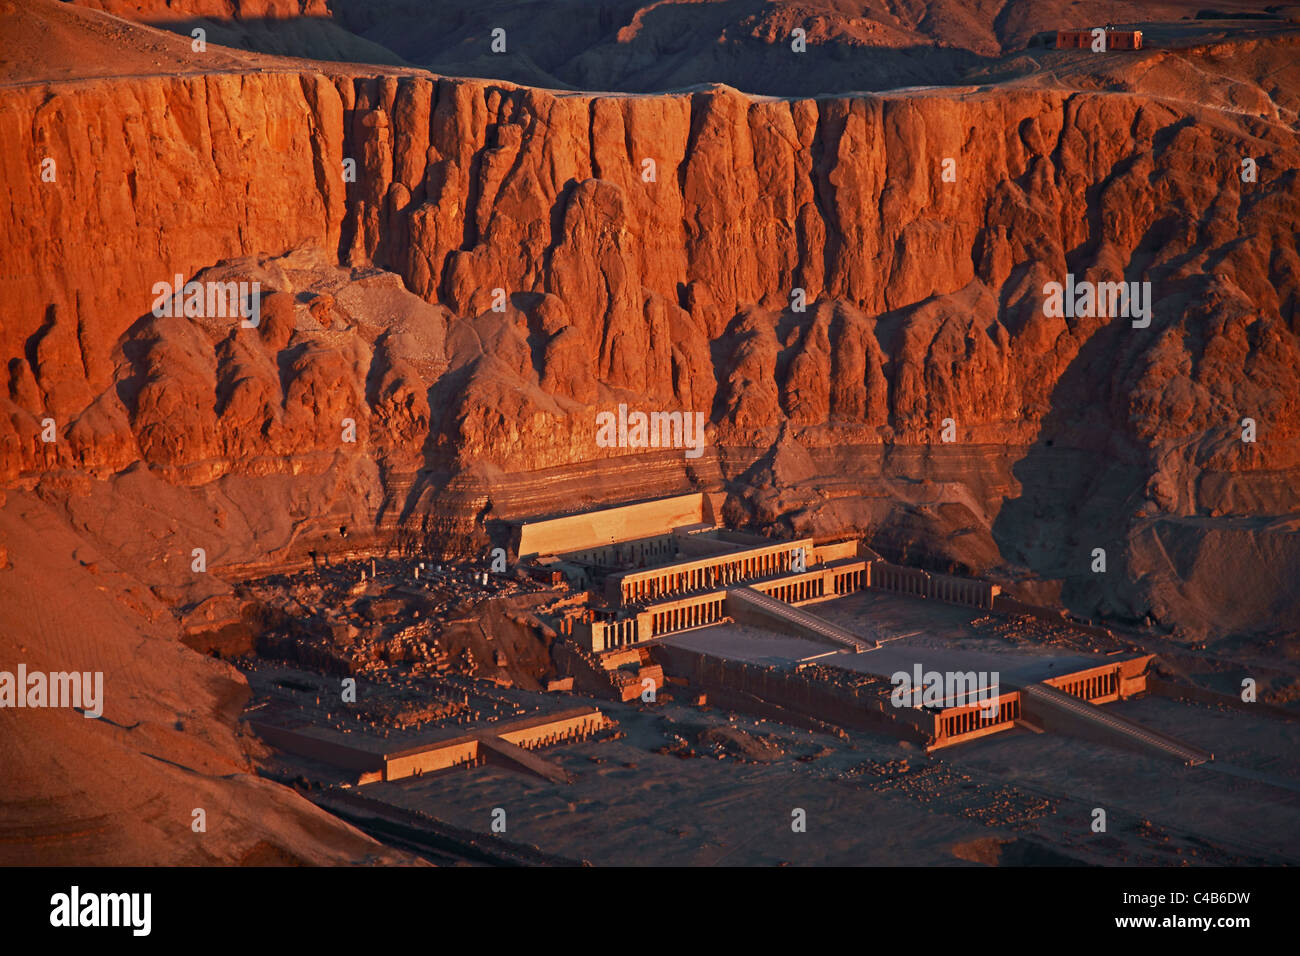 Aerial view of the temple complex of Queen Hatshepsut (Deir el-Bahri) seen from an hot air balloon at dawn - Stock Image